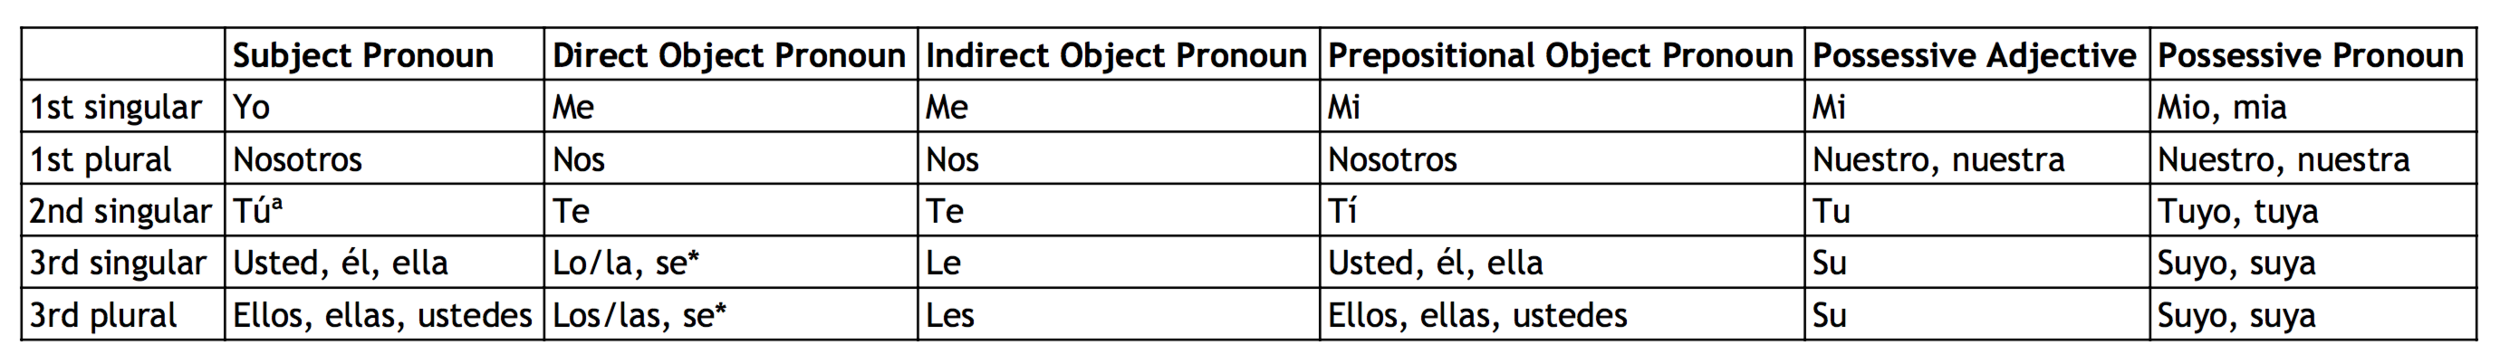 """*For reflexive verbs  ªIf you've studied Spanish, you might be familiar with the pronouns """"vos"""" (common in certain countries in South America) or """"vosotros"""" (common in Spain). Don't worry about learning either of these for the sake of the SAT Subject Test."""